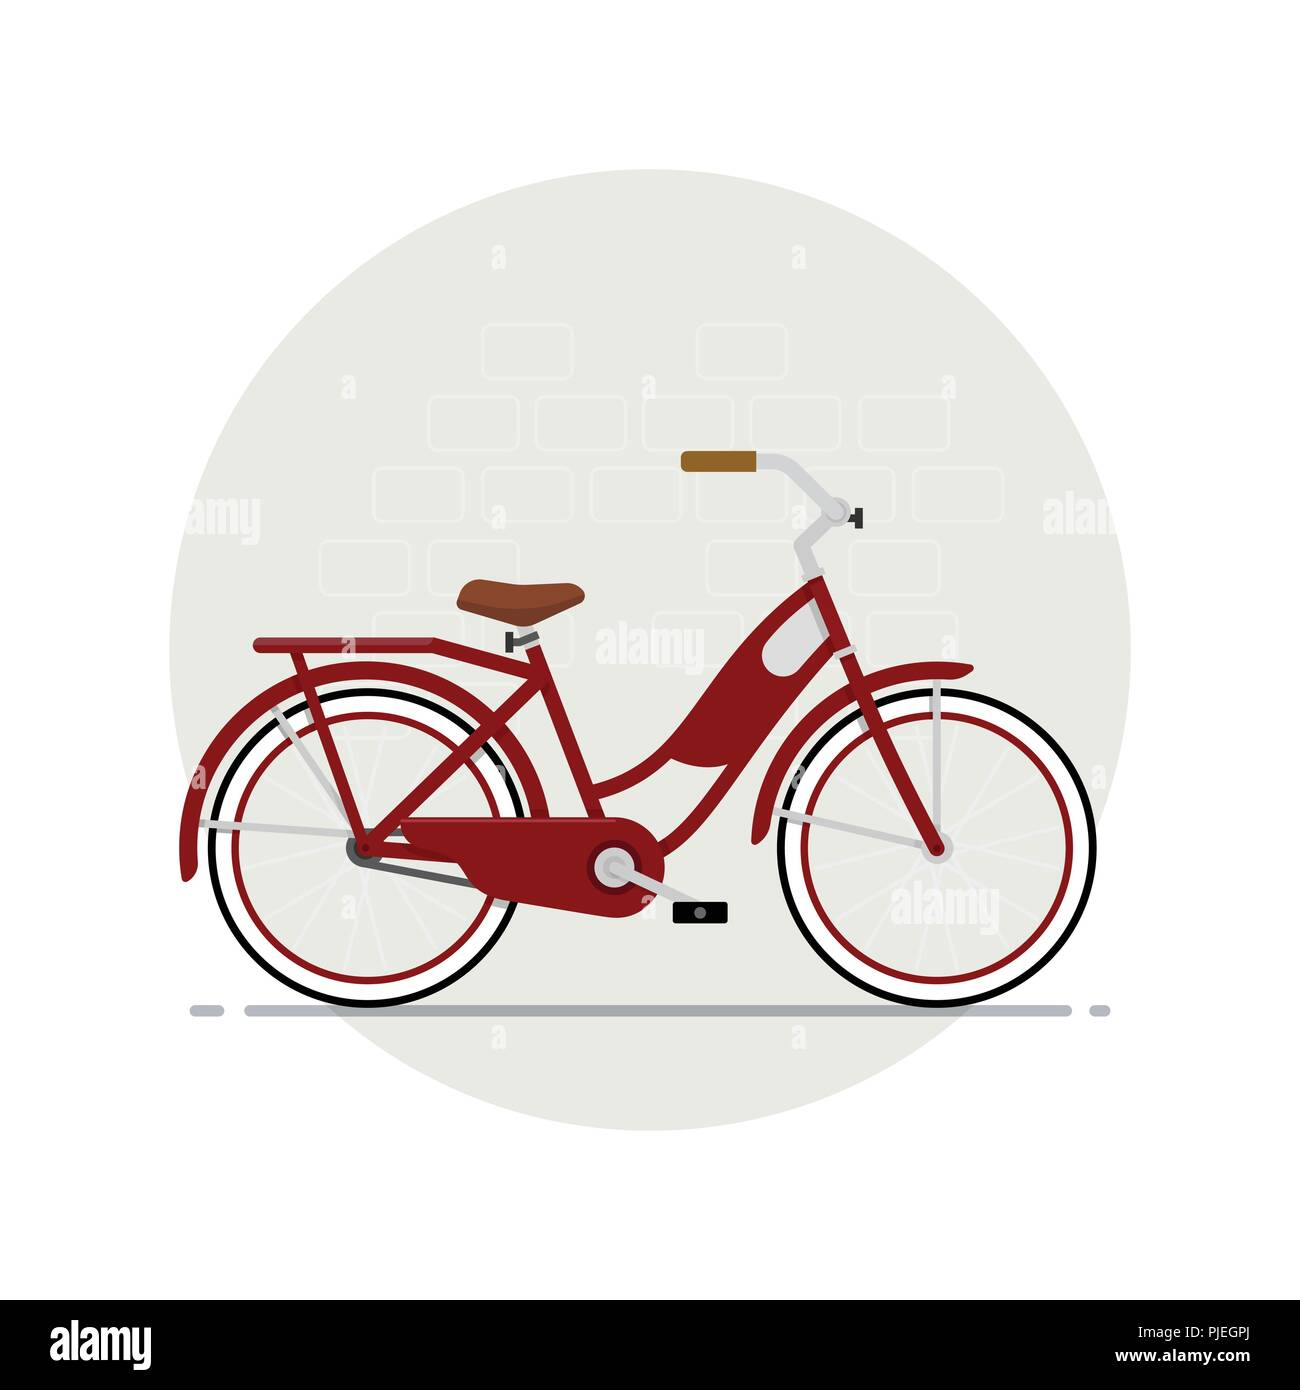 Red bicycle - Stock Image